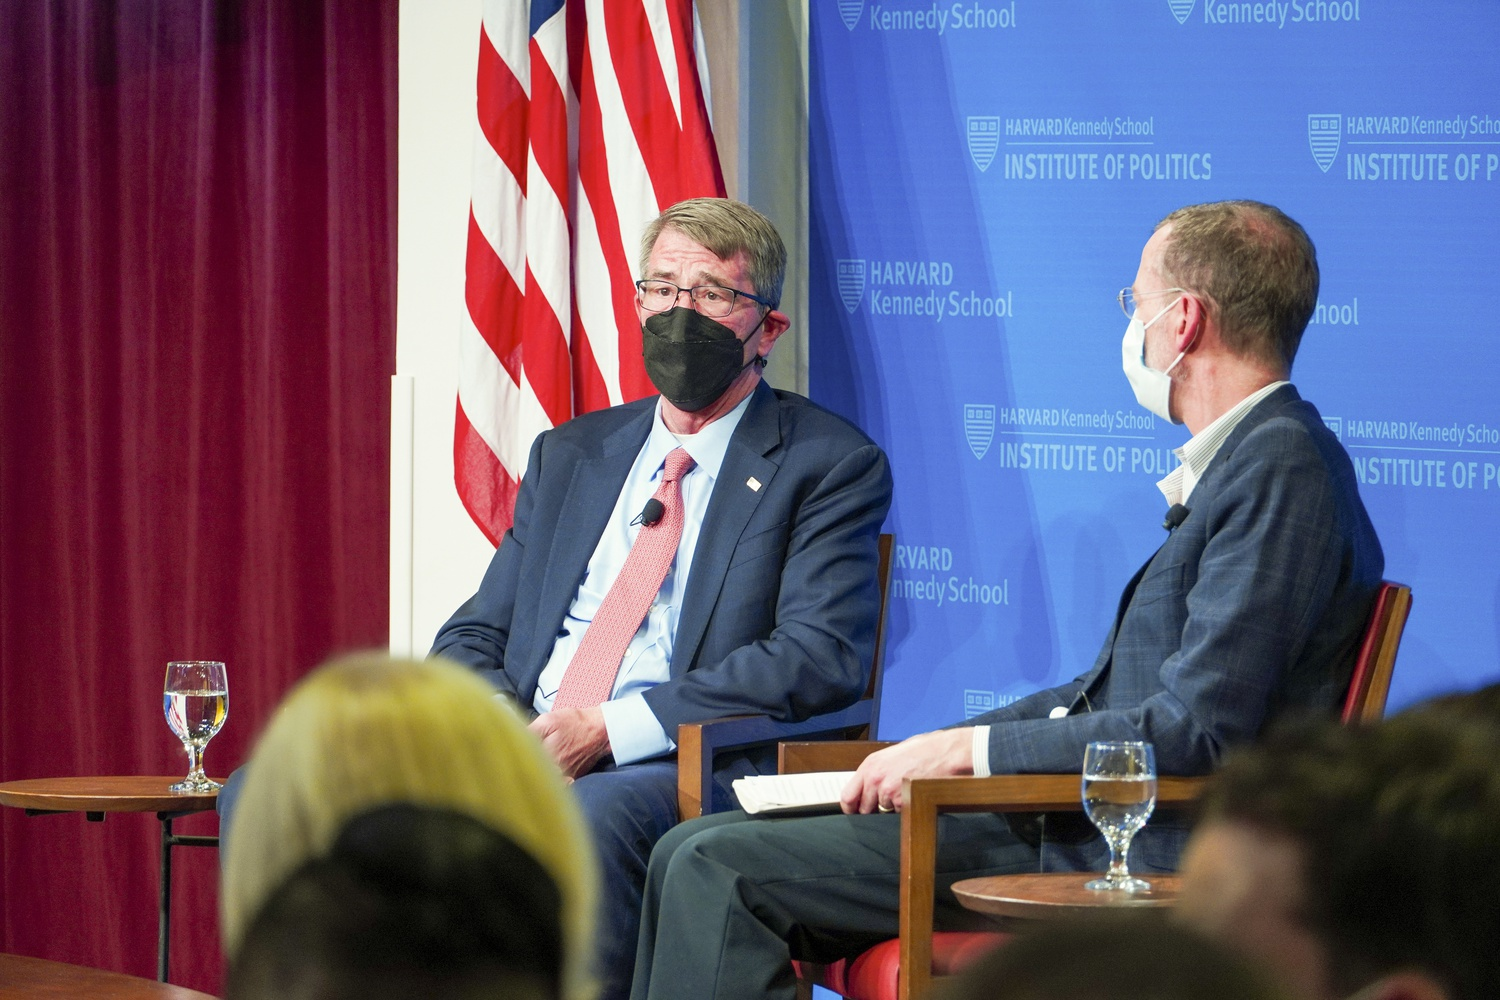 Harvard Kennedy School Dean Douglas W. Elmendorf hosted Ash Carter — former Secretary of Defense and the director of HKS's Belfer Center — at the Harvard Institute of Politics Wednesday evening to discuss U.S-Afghanistan relations.